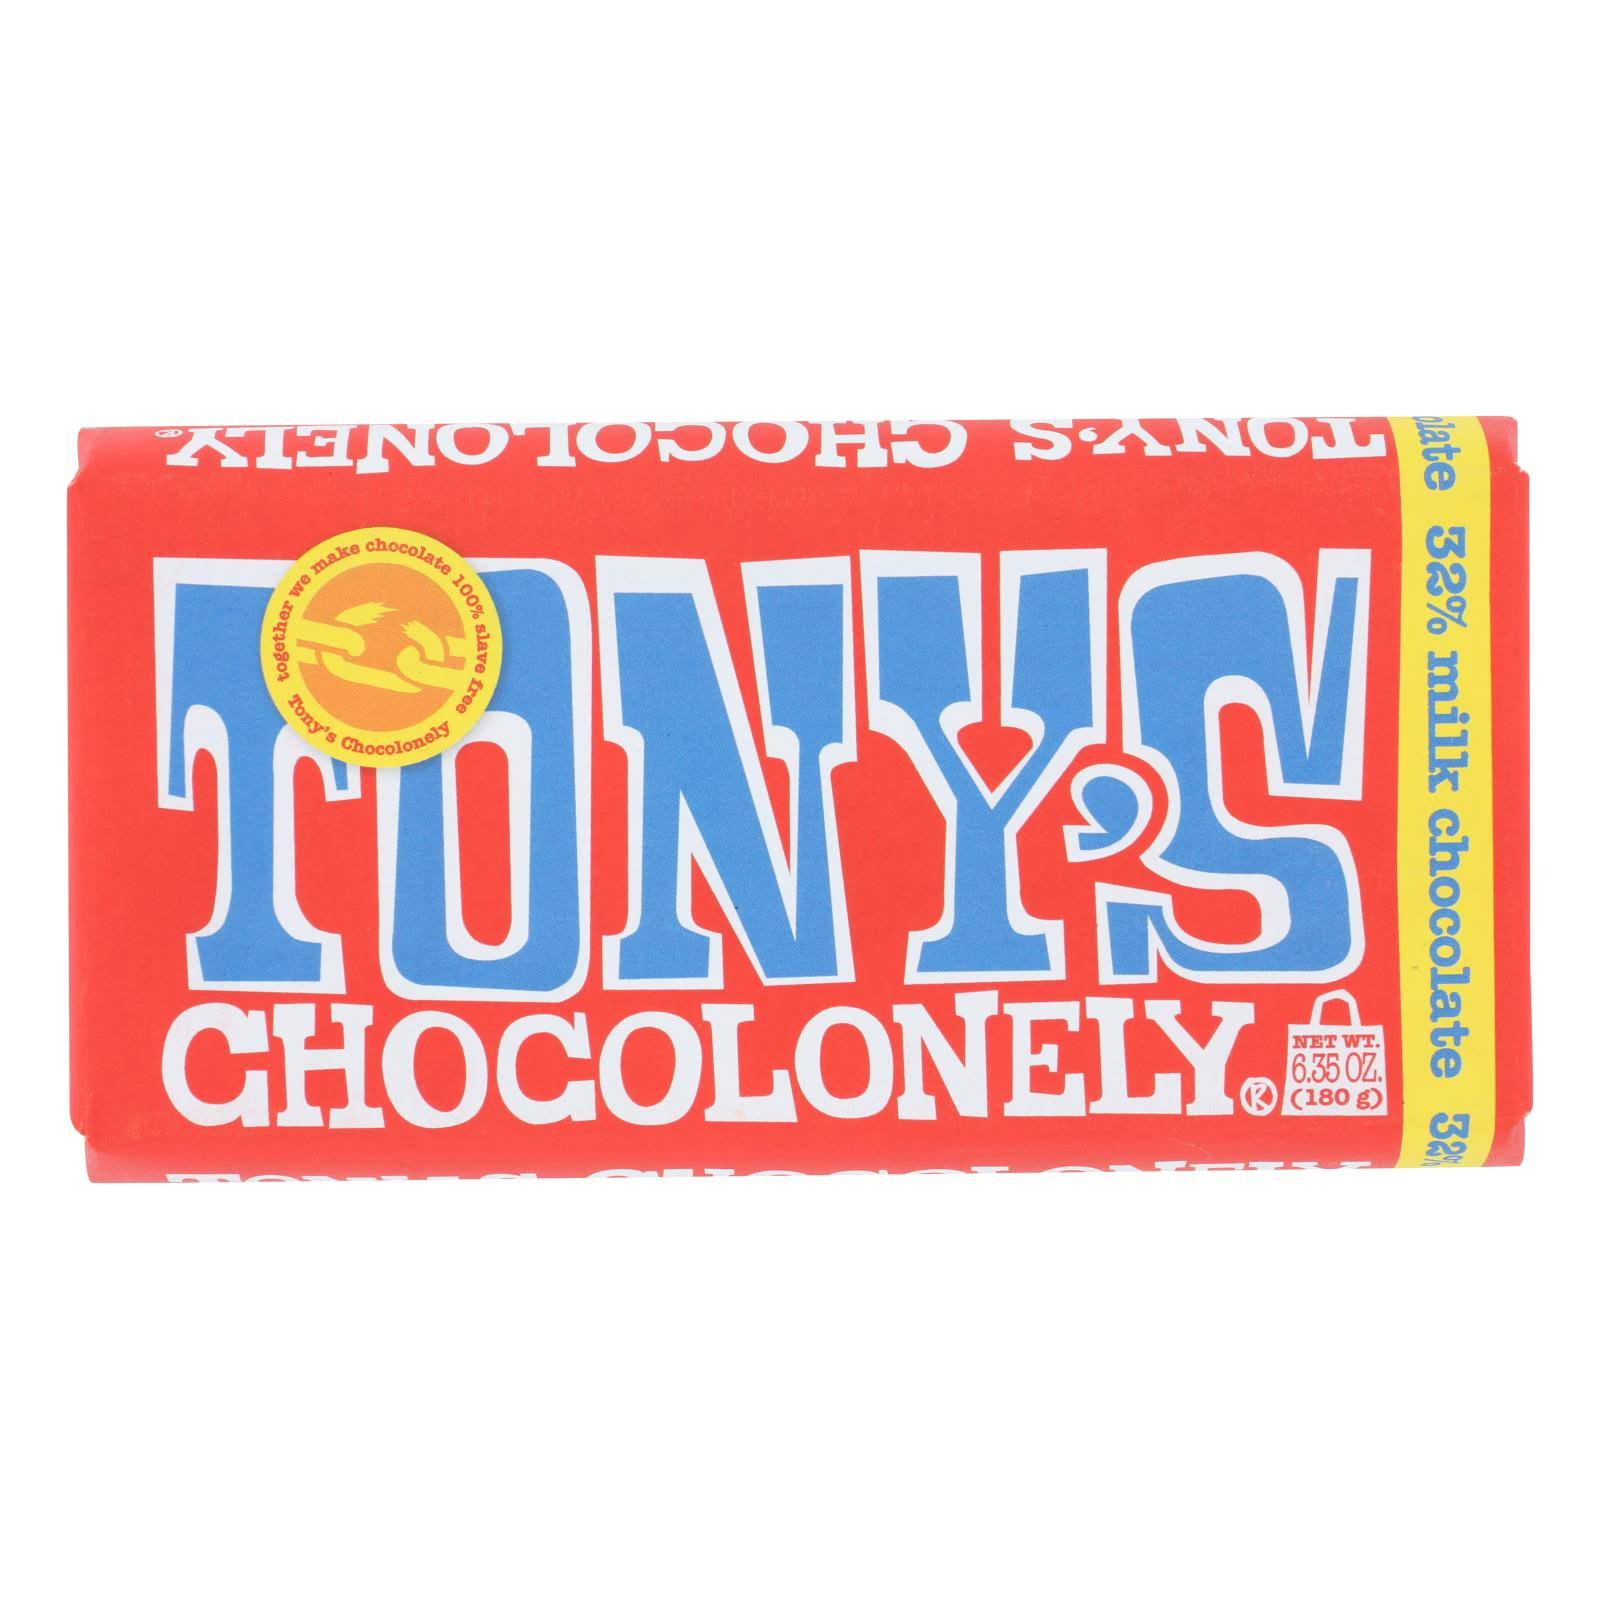 Tonys Chocolonely Milk Chocolate - 6.35 oz